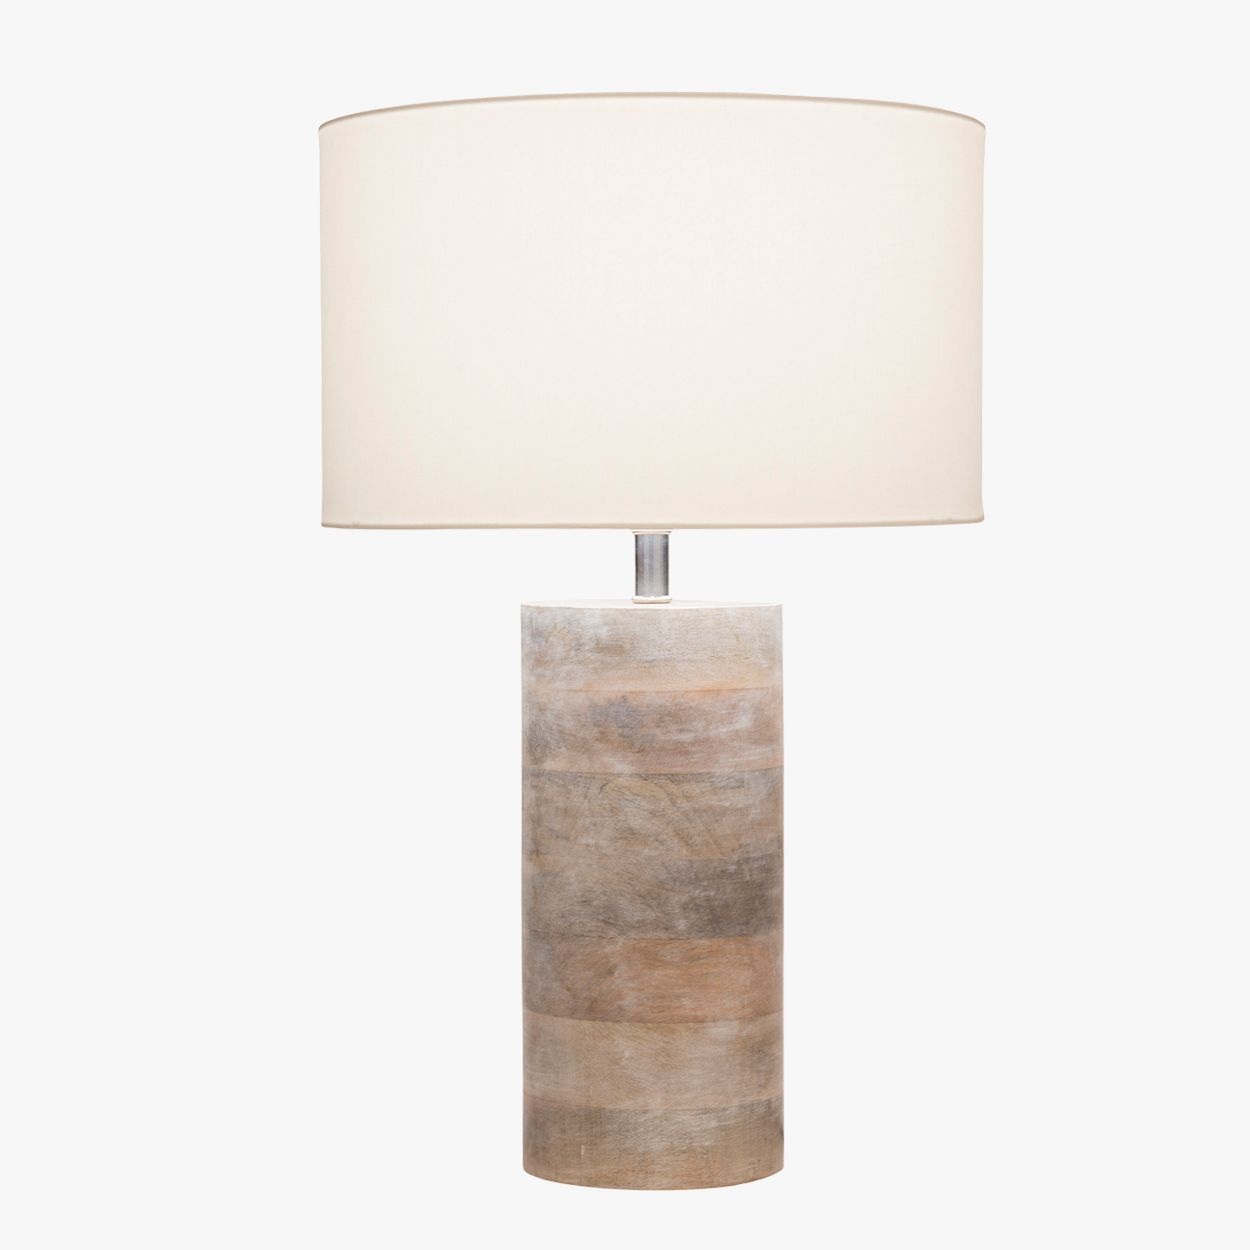 Our Arden Bleached Wood Lamp Features A Stacked Natural Base And White Cotton Shade This Versatile Table Will Add An Organic Vibe